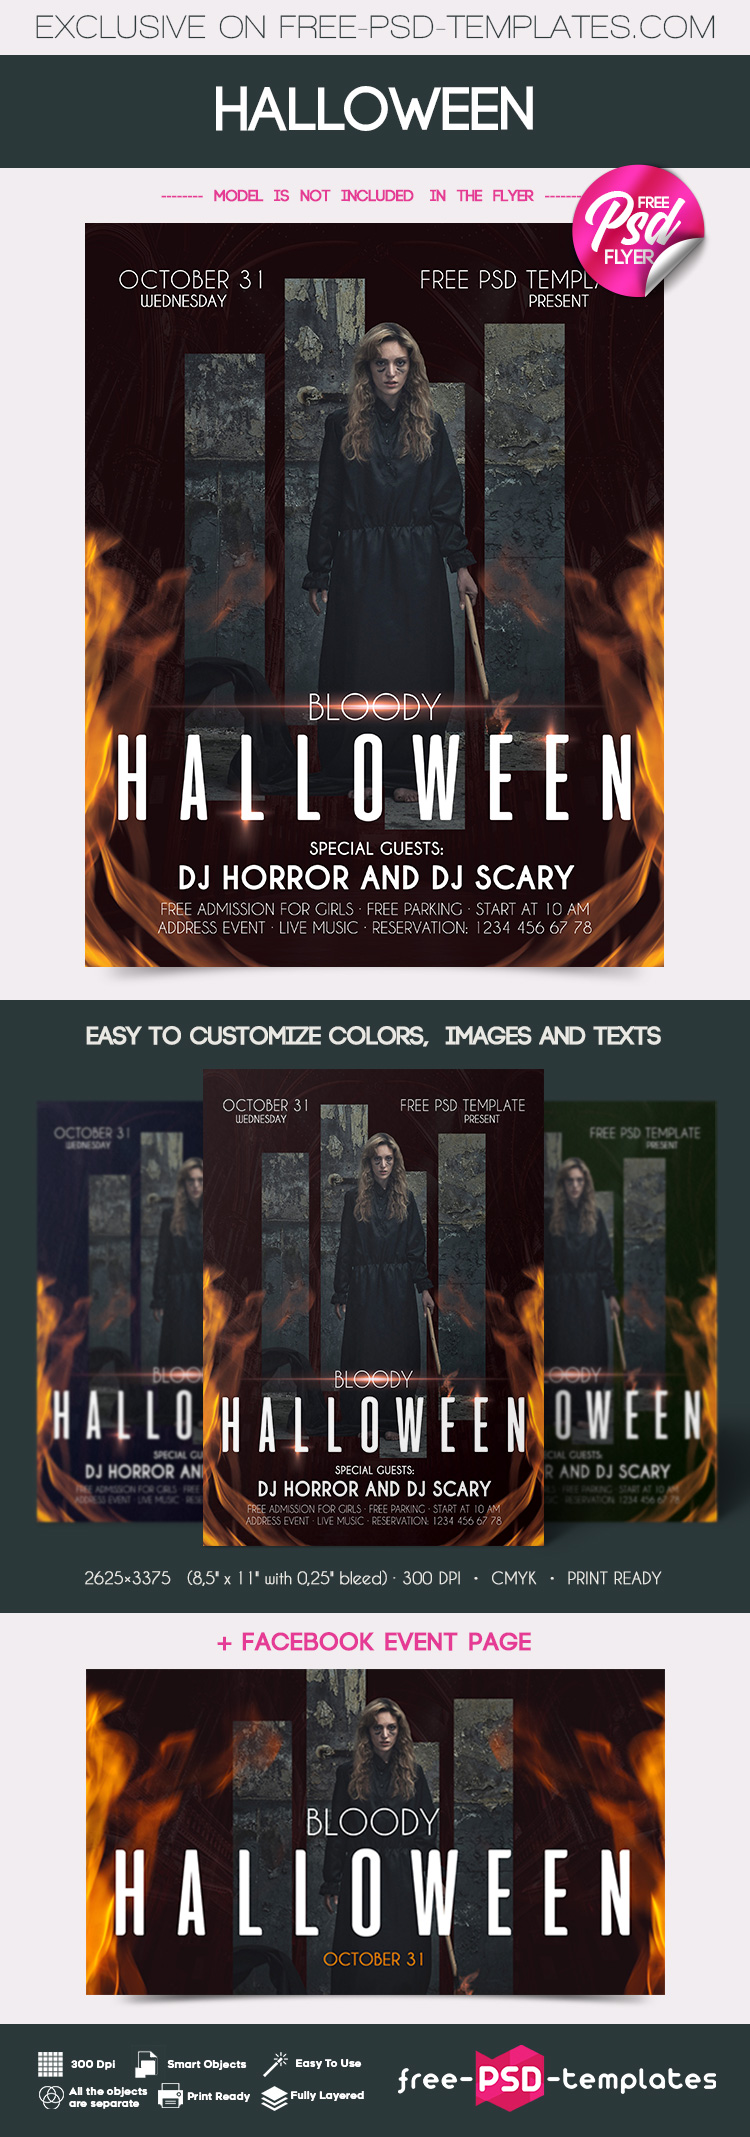 Free Halloween Flyer In Psd Free Psd Templates